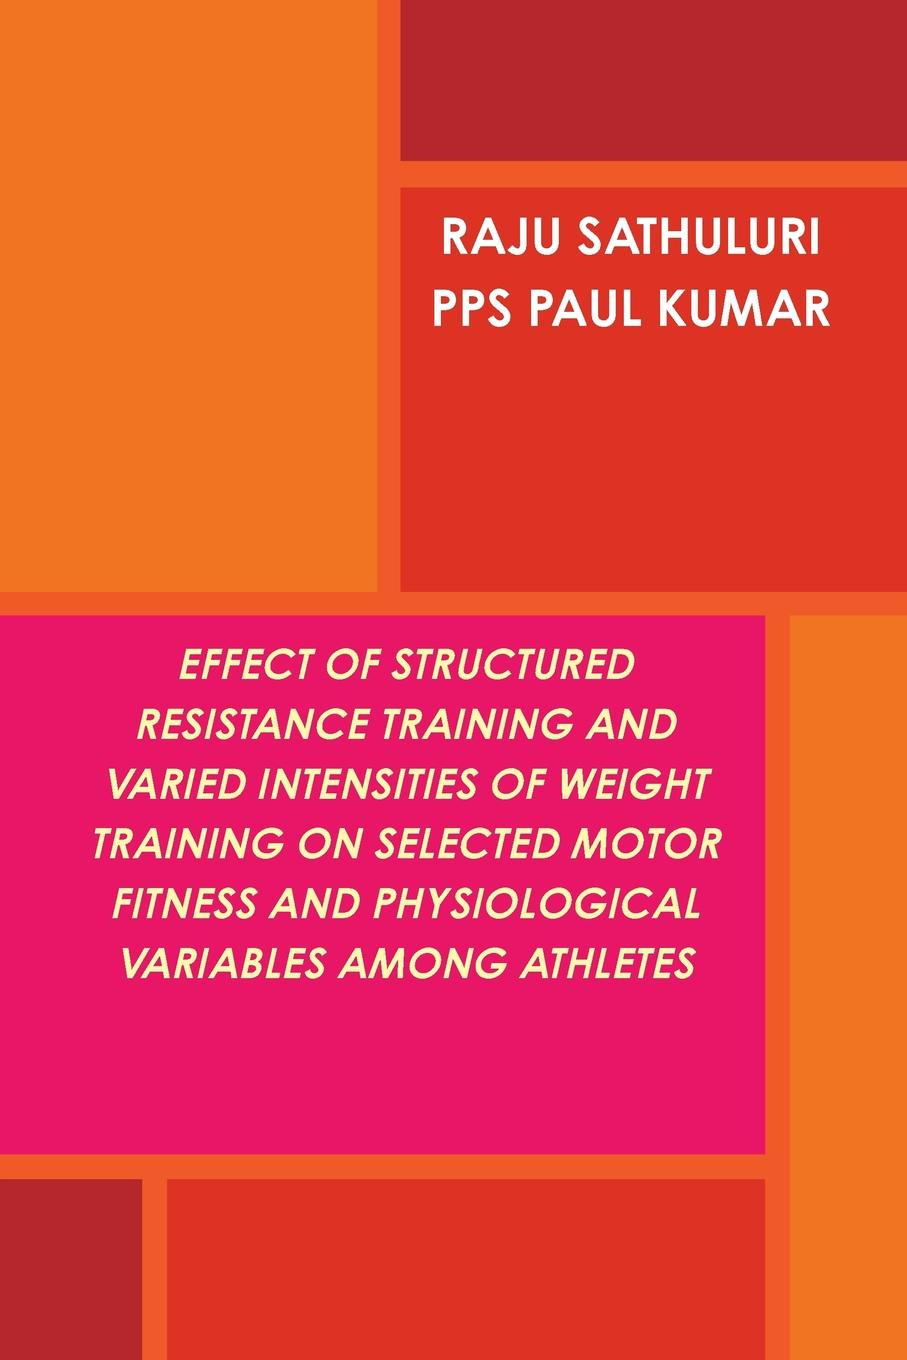 купить RAJU SATHULURI, PAUL KUMAR P.P.S EFFECT OF STRUCTURED RESISTANCE TRAINING AND VARIED INTENSITIES OF WEIGHT TRAINING ON SELECTED MOTOR FITNESS AND PHYSIOLOGICAL VARIABLES AMONG ATHLETES онлайн